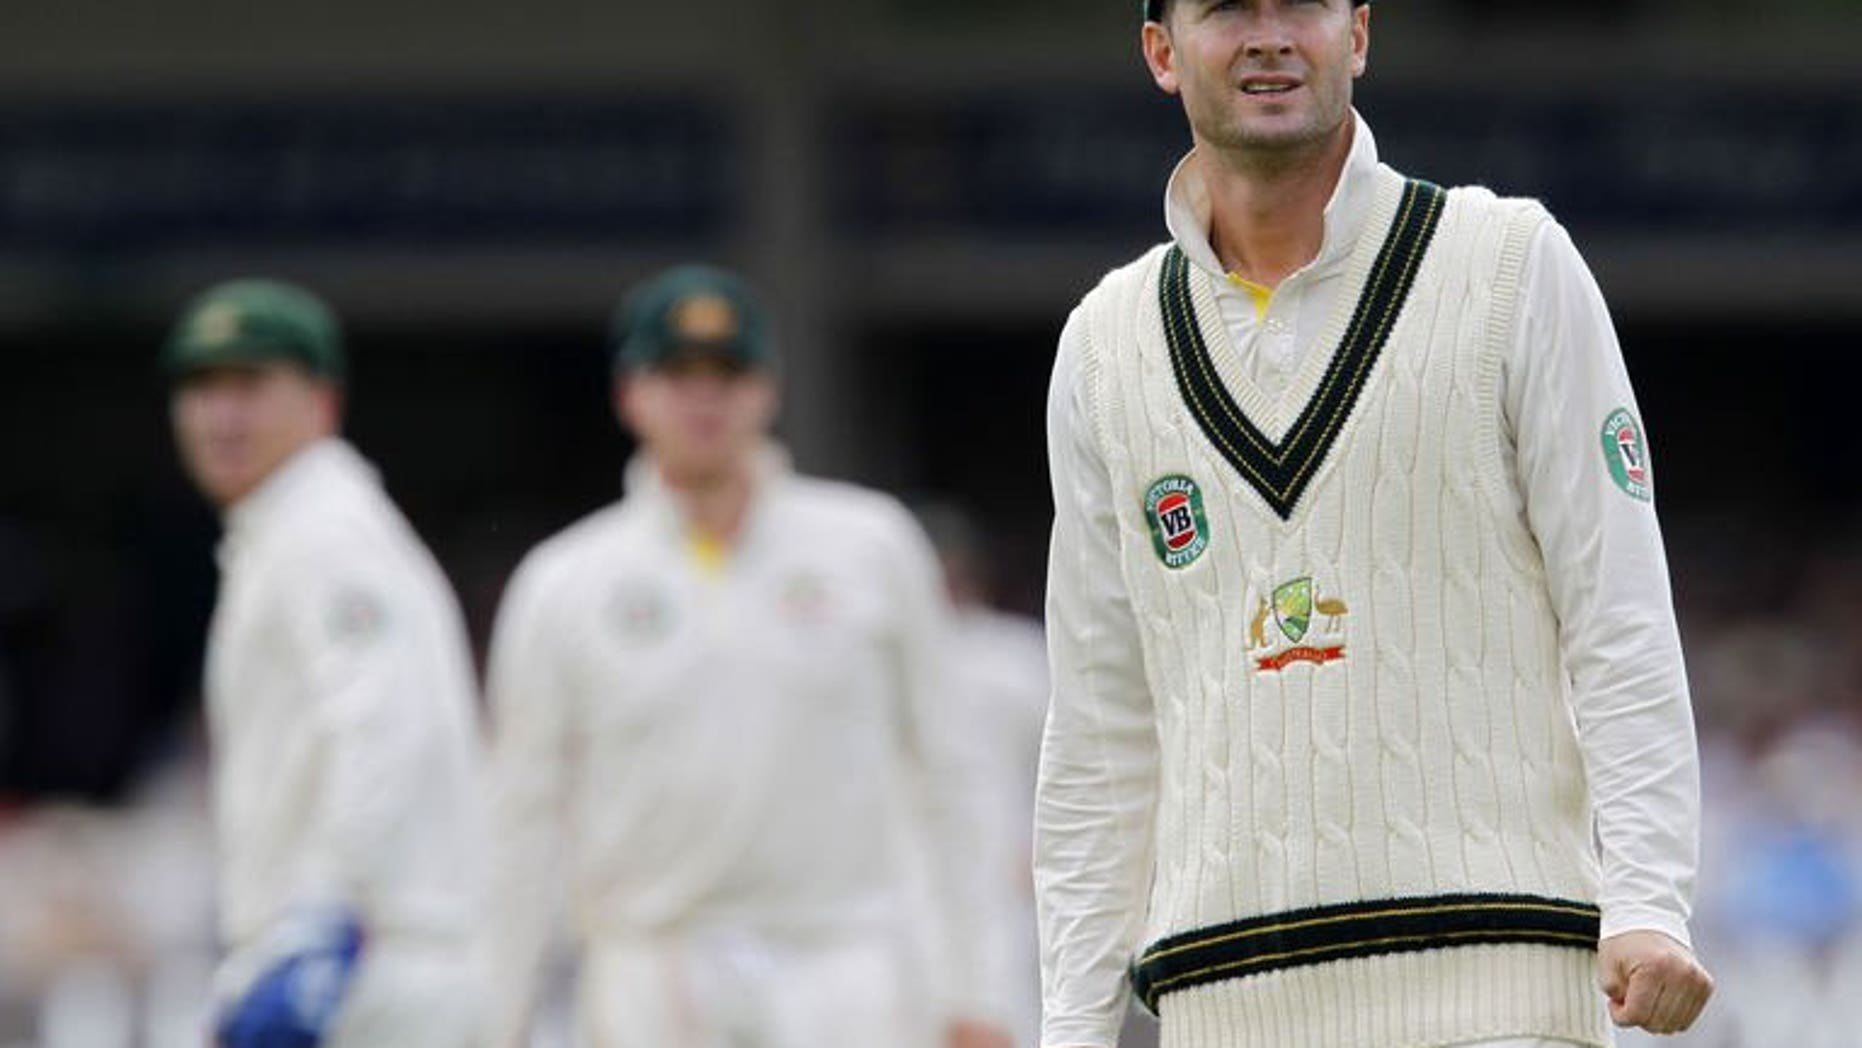 Australia's captain Michael Clarke reacts to another England boundary at Lord's cricket ground in north London, on July 20, 2013. Clarke vowed to have the last laugh on all those who mocked his suggestion Australia could still win the Ashes after a crushing defeat at Lord's left them 2-0 down in the five-match series.